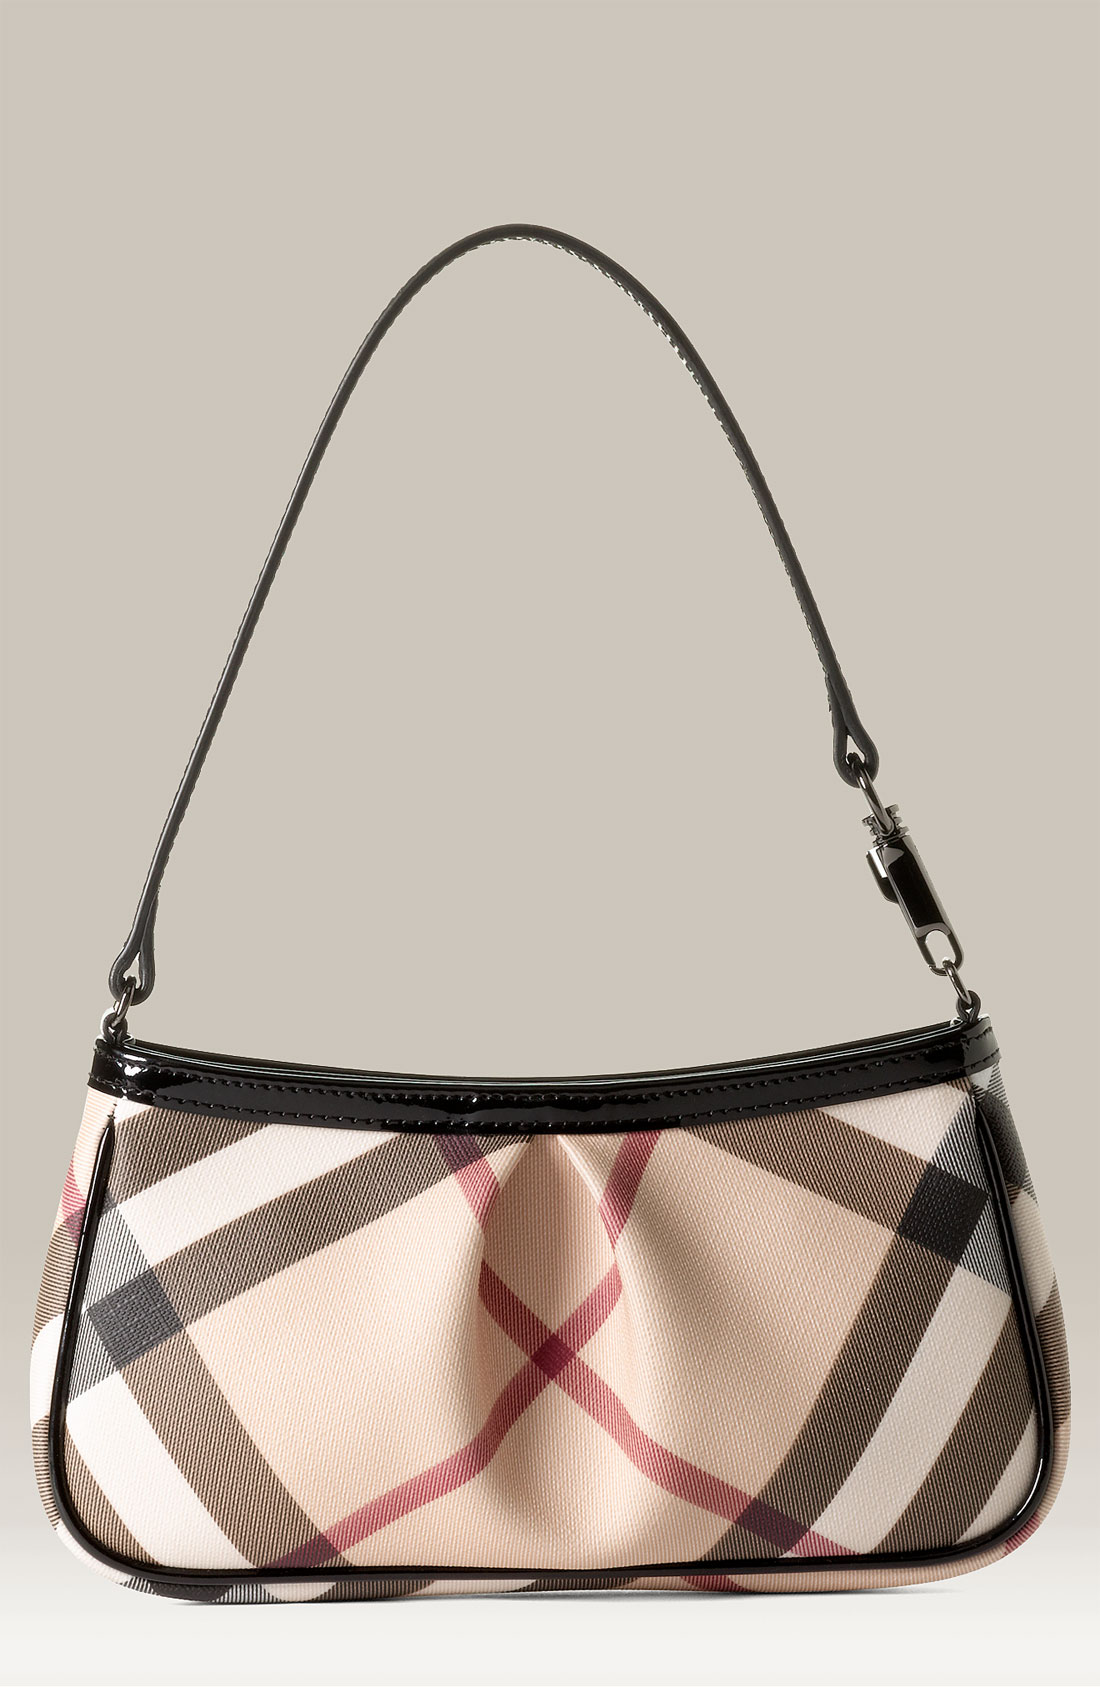 Burberry Small Check Print Shoulder Bag 2